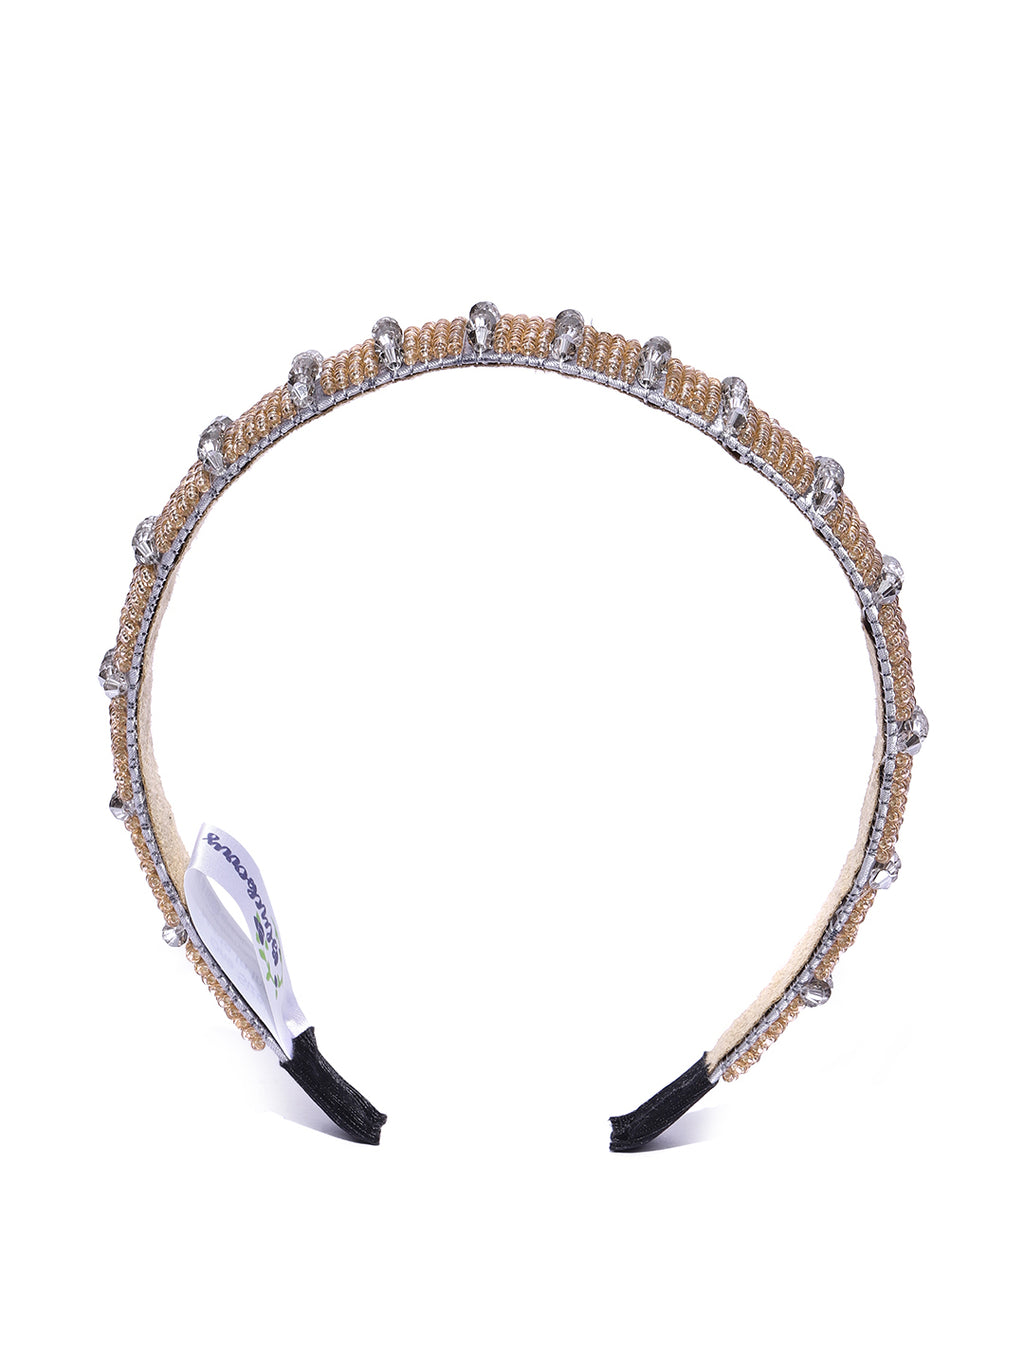 Blueberry golden and grey precious beads detailed hair band